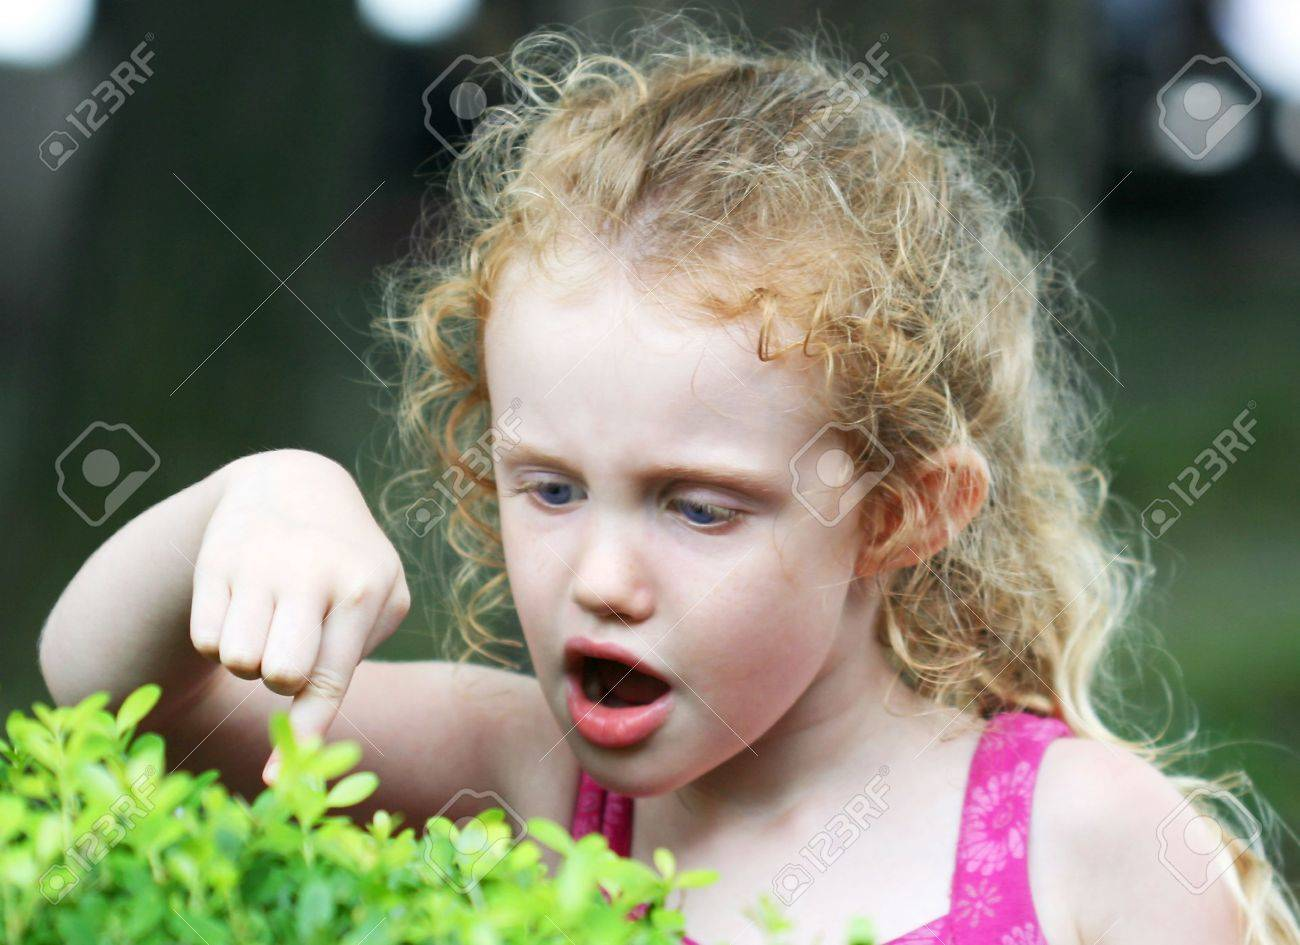 A Little Girl with Big Blue Eyes Makes a Discovery Stock Photo - 7700600